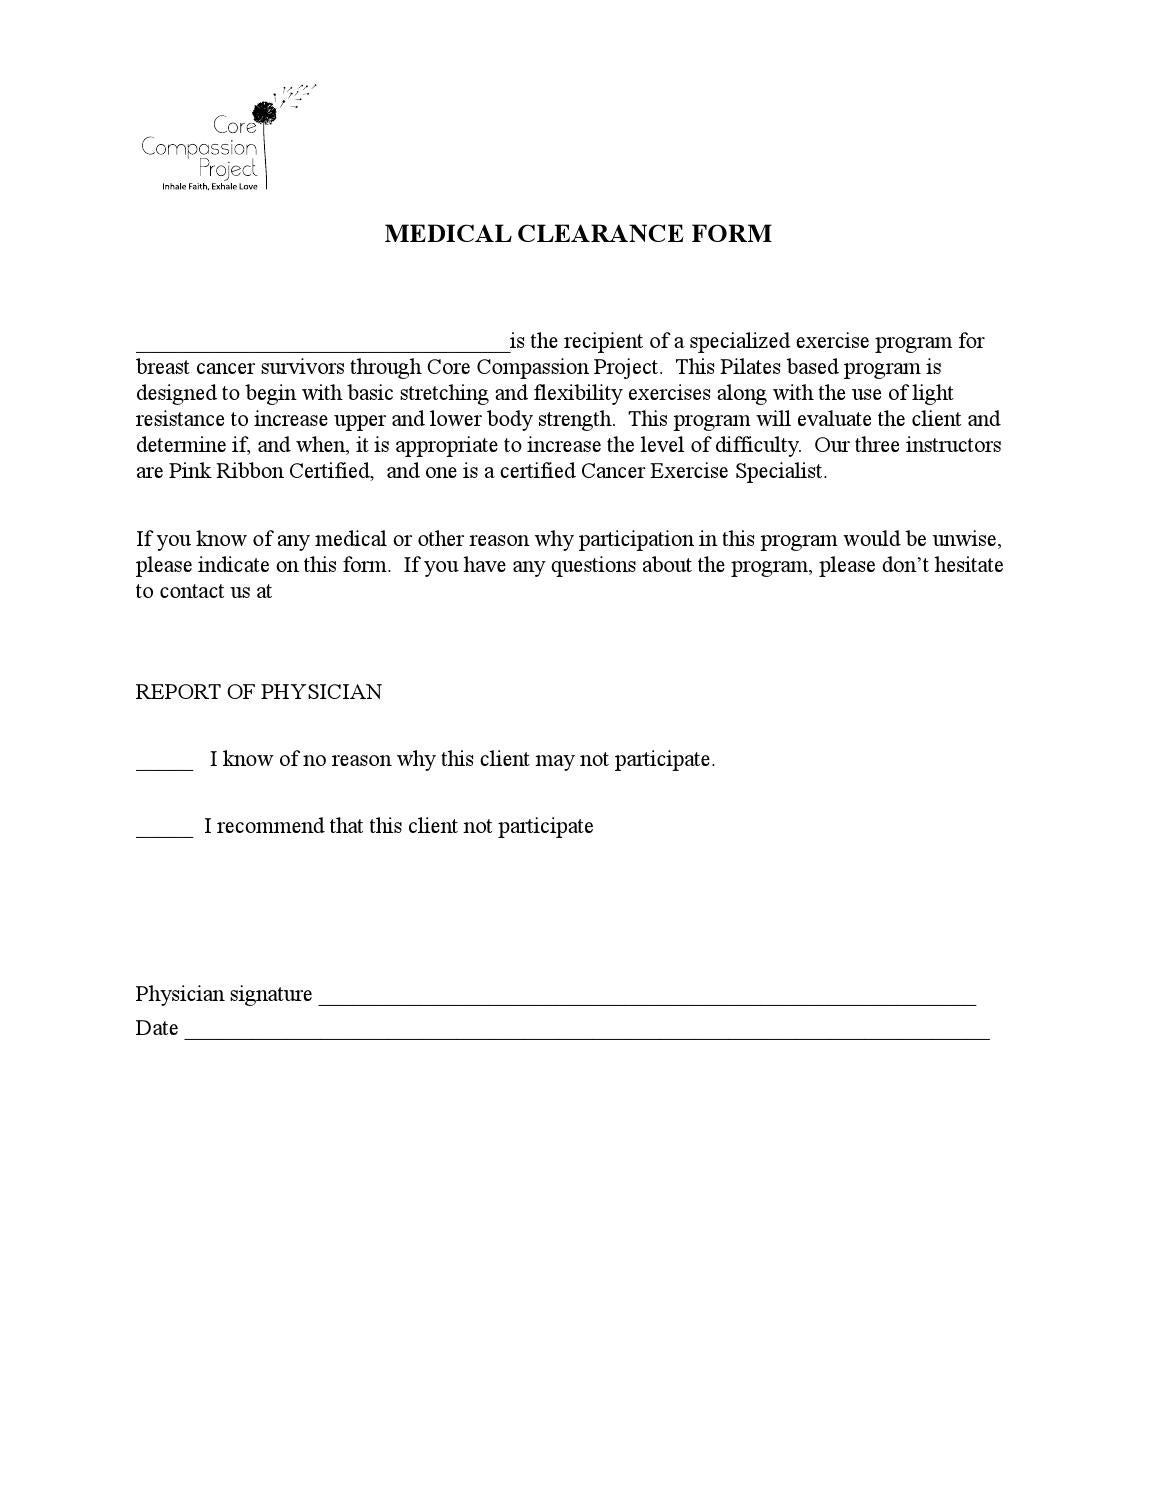 Medical clearance form by Core Compassion Project issuu – Medical Clearance Form